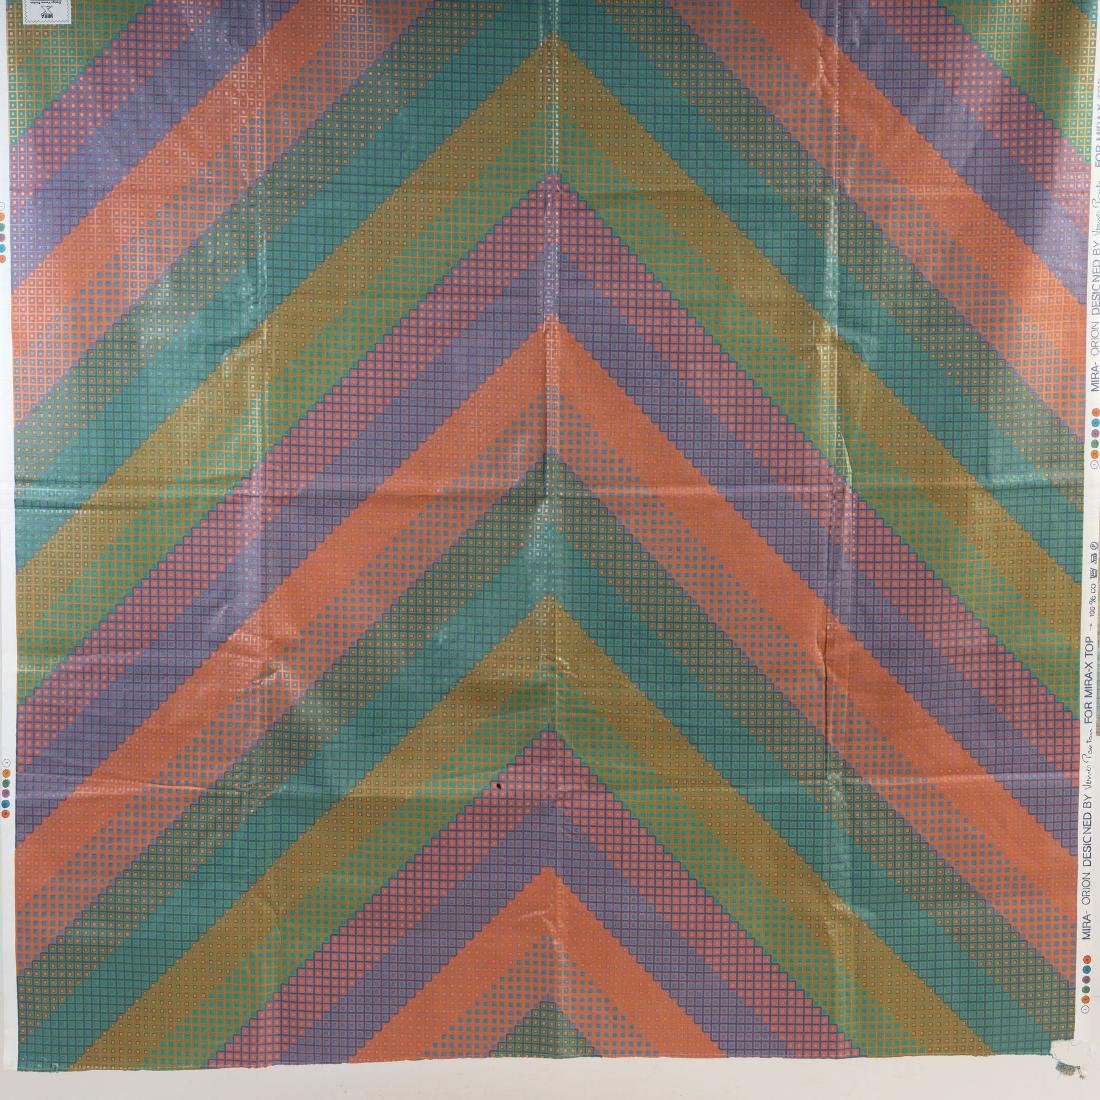 'Orion' piece of fabric, 1984